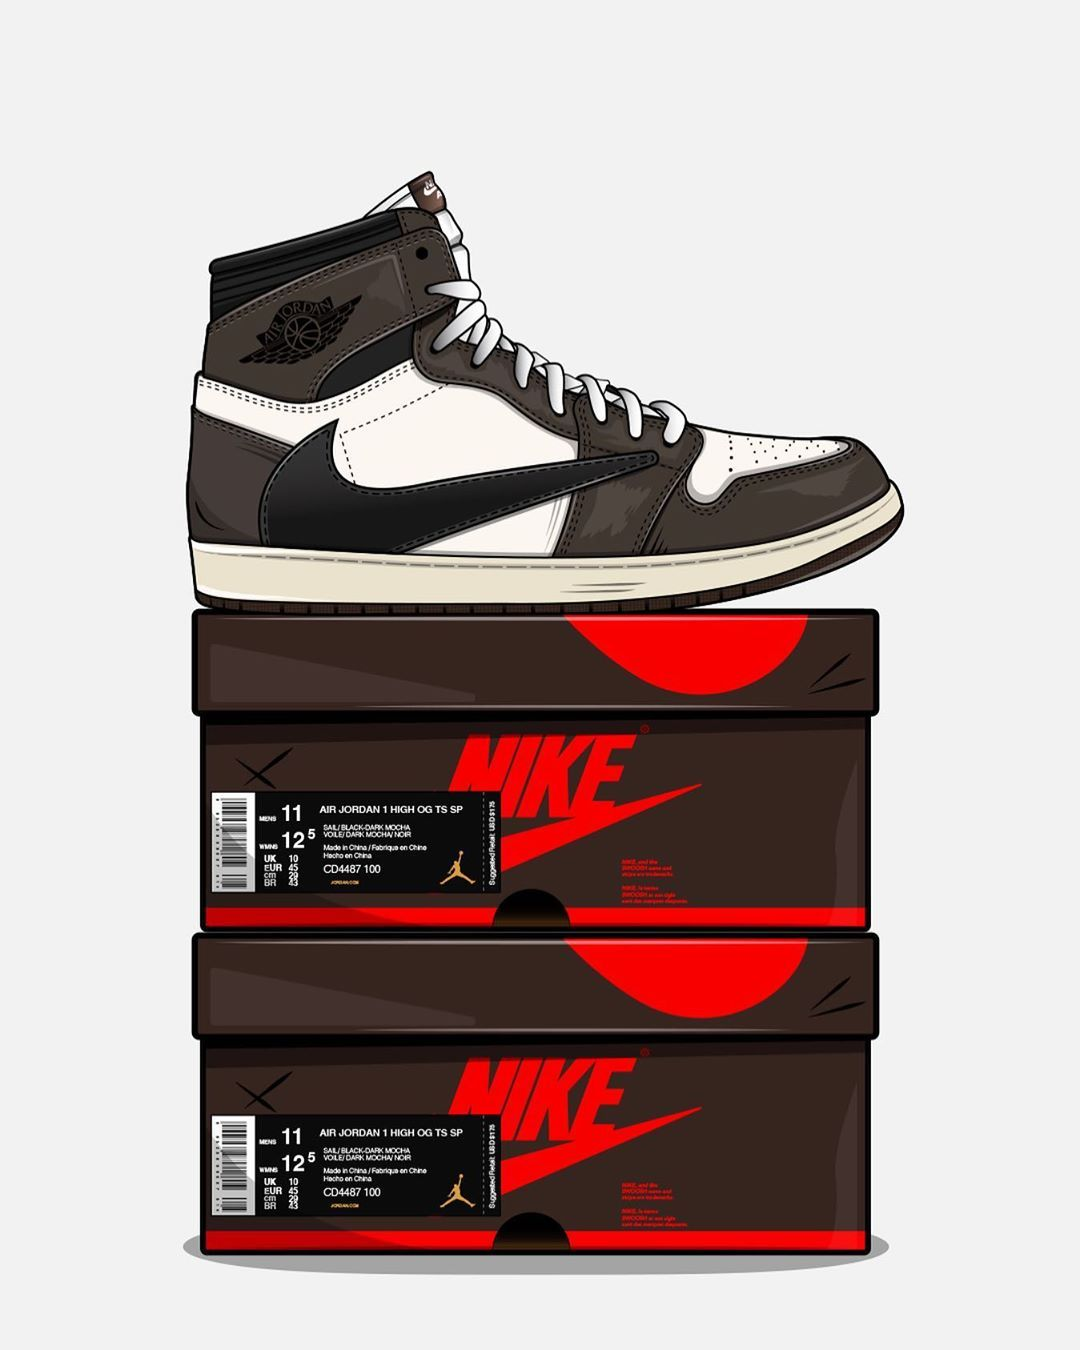 2 166 Mentions J Aime 44 Commentaires No Sply No Sply Sur Instagram Travis Scott Aj1 Is This T Sneakers Illustration Shoes Wallpaper Sneakers Drawing